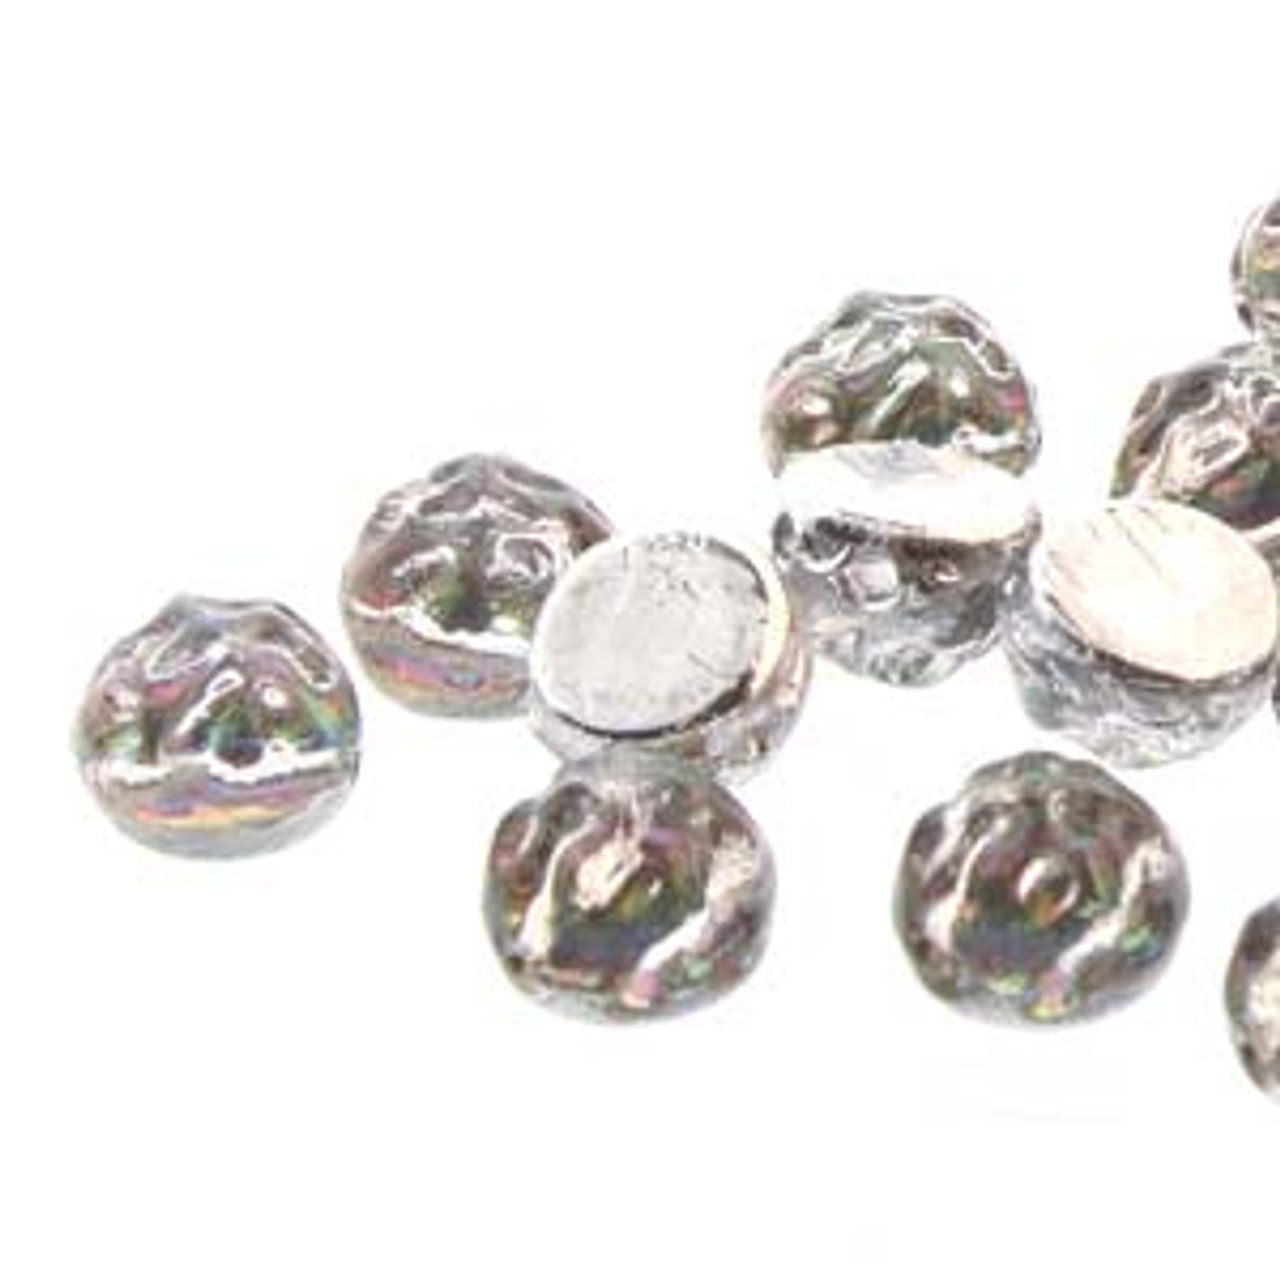 7mm Backlit Spectrum Two Hole Cabochon (20pk) CCB0700030-29436